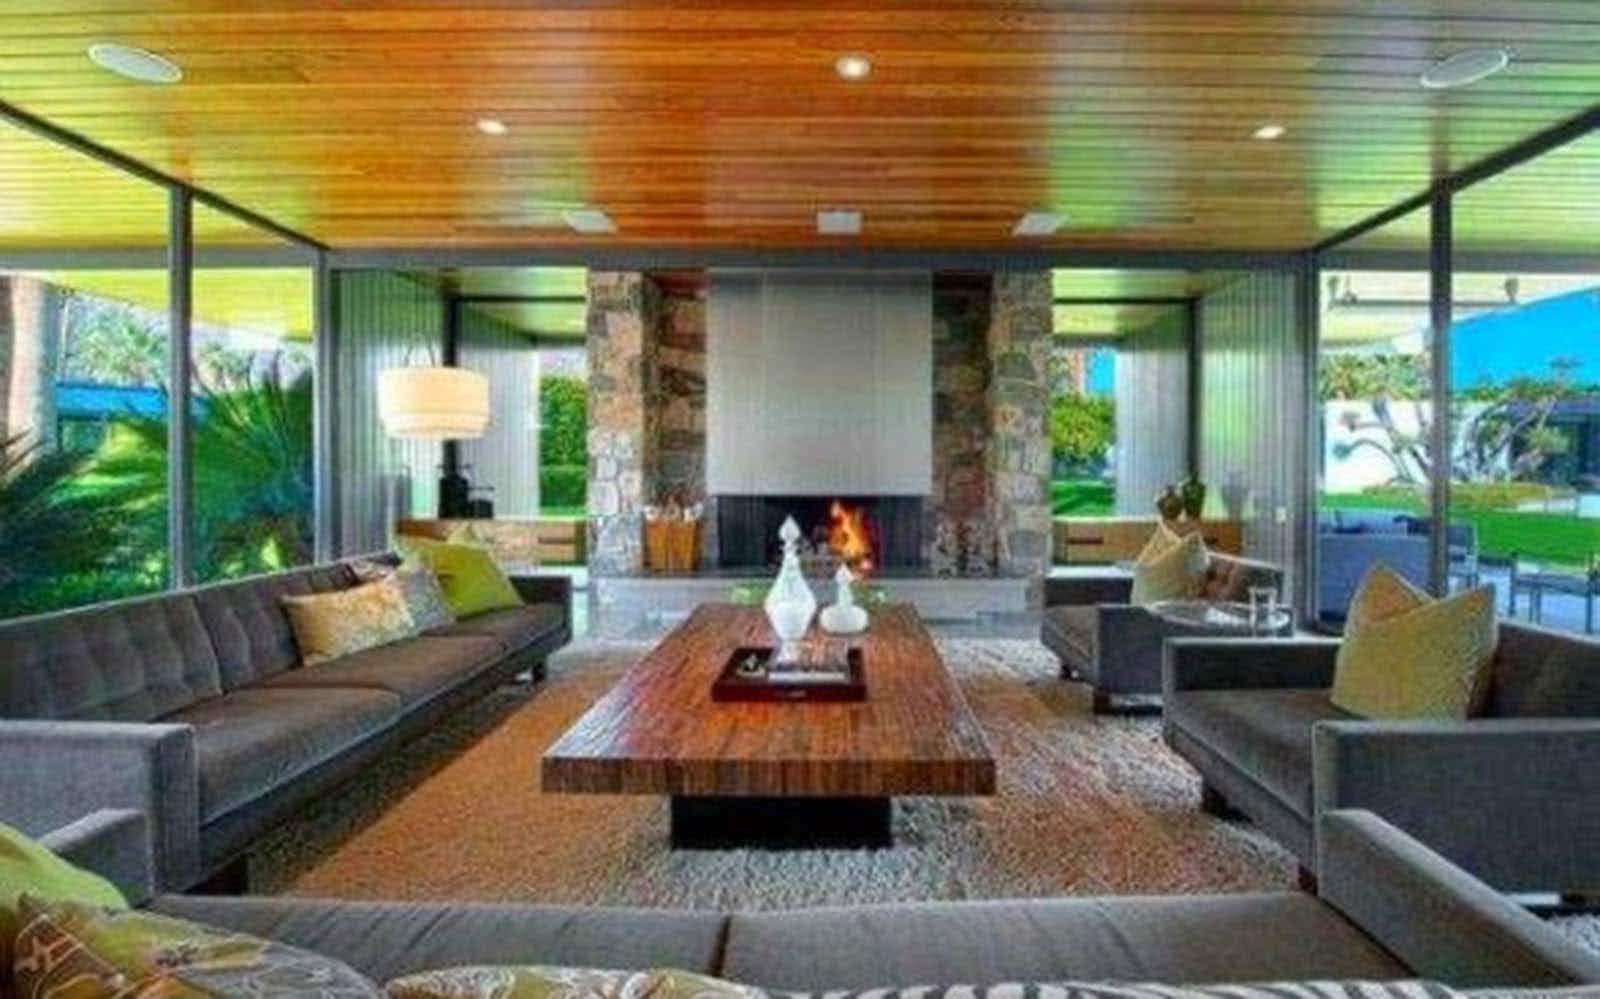 Have a star-studded holiday by renting Leonardo DiCaprio's stunning Palm Springs home